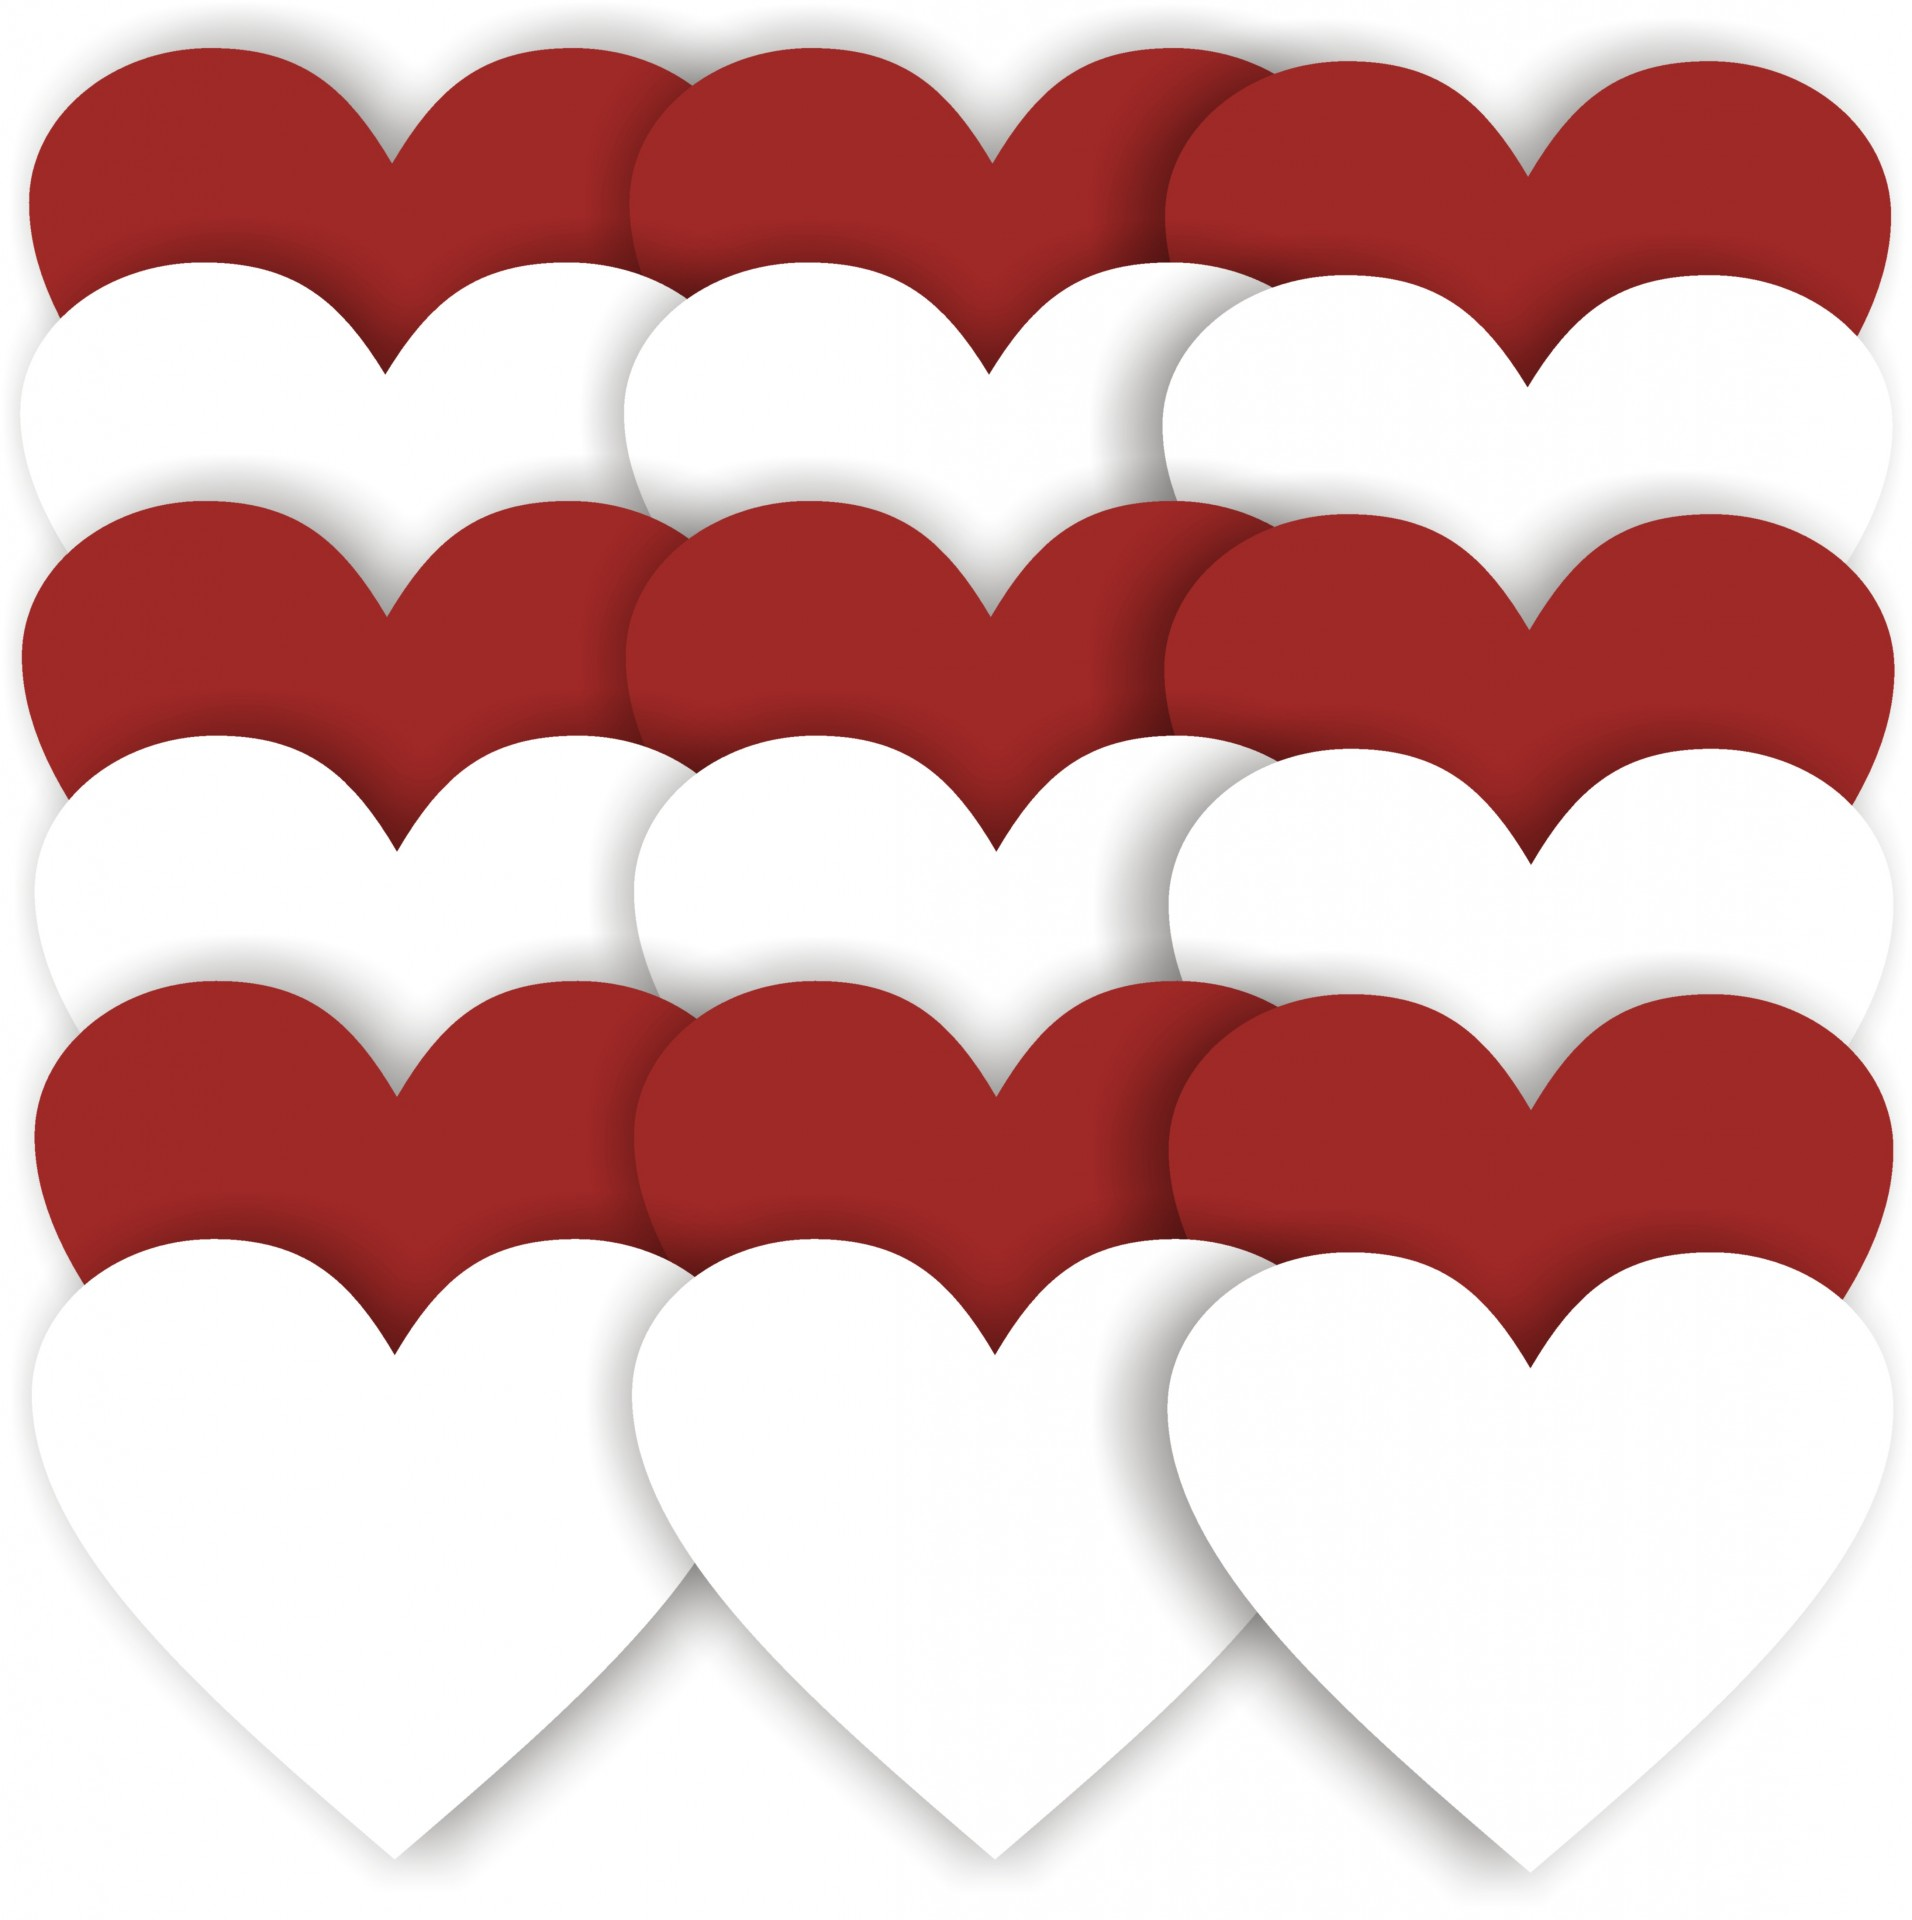 1912x1920 Red And White Heart Background Free Stock Photo